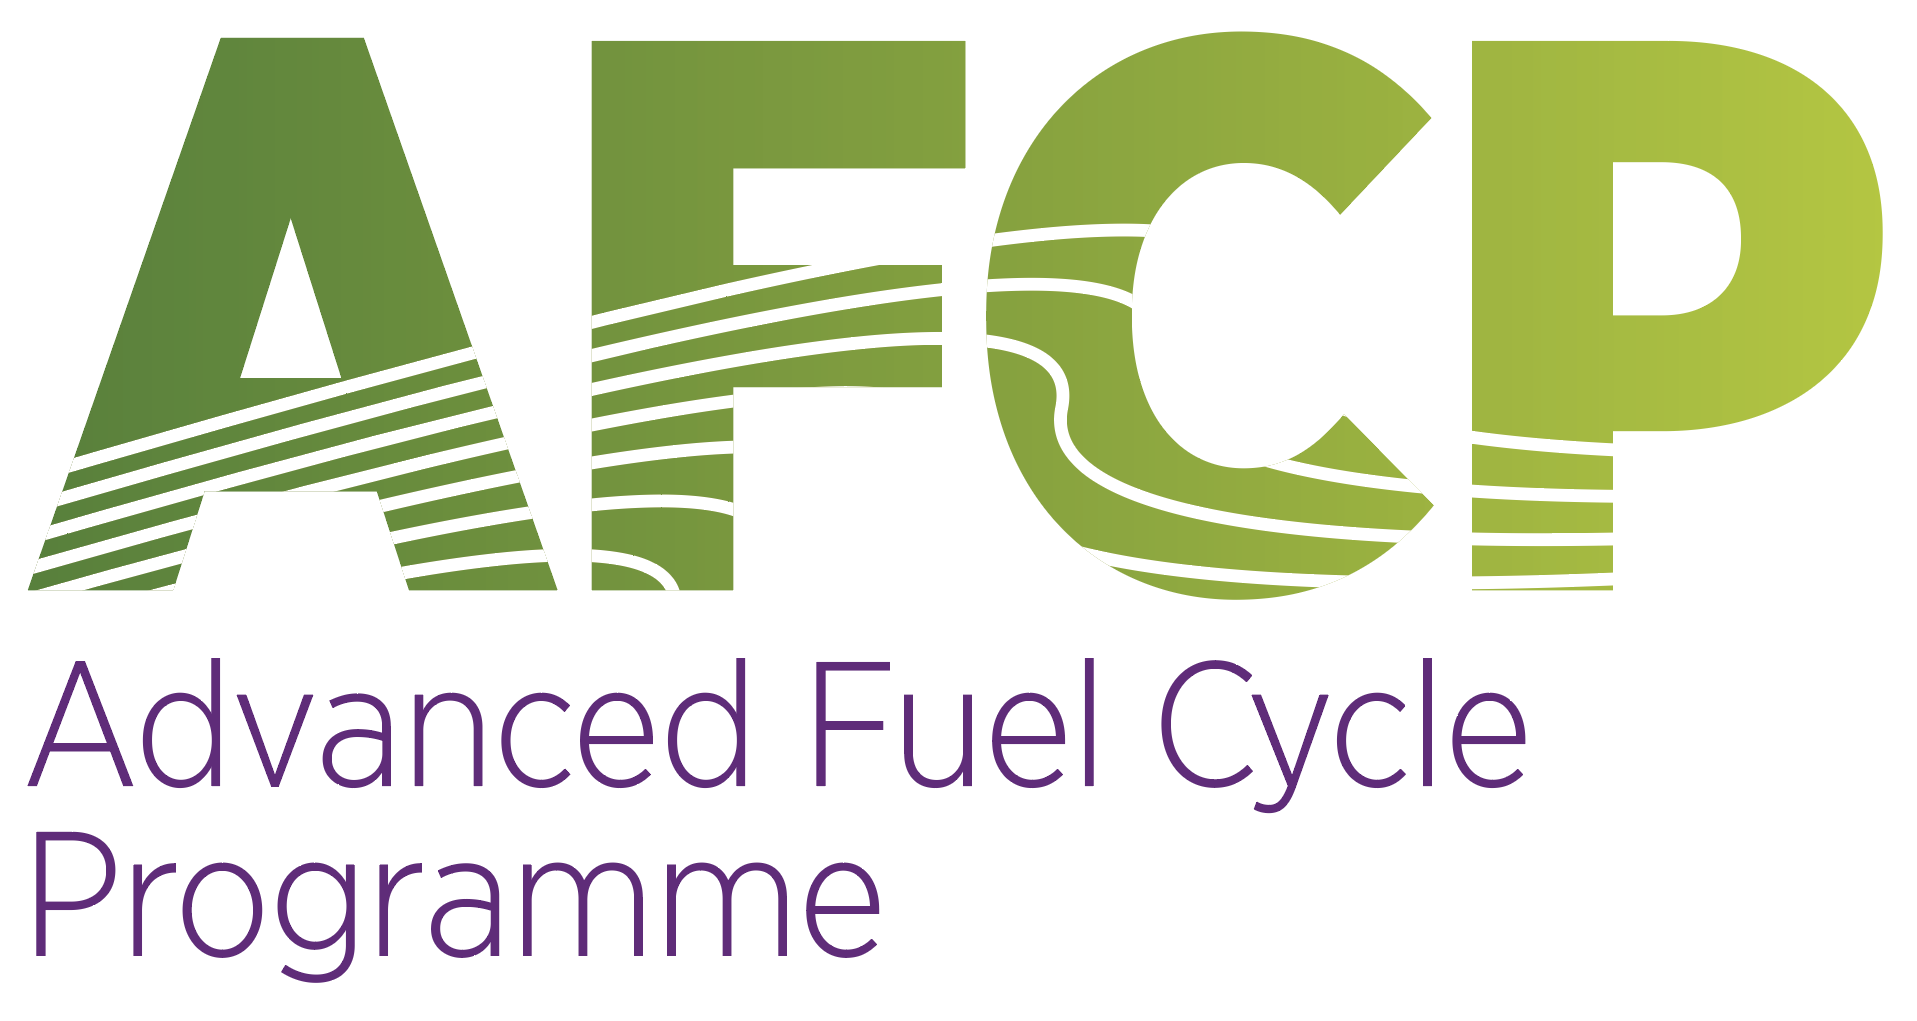 Advanced Fuel Cycle Programme